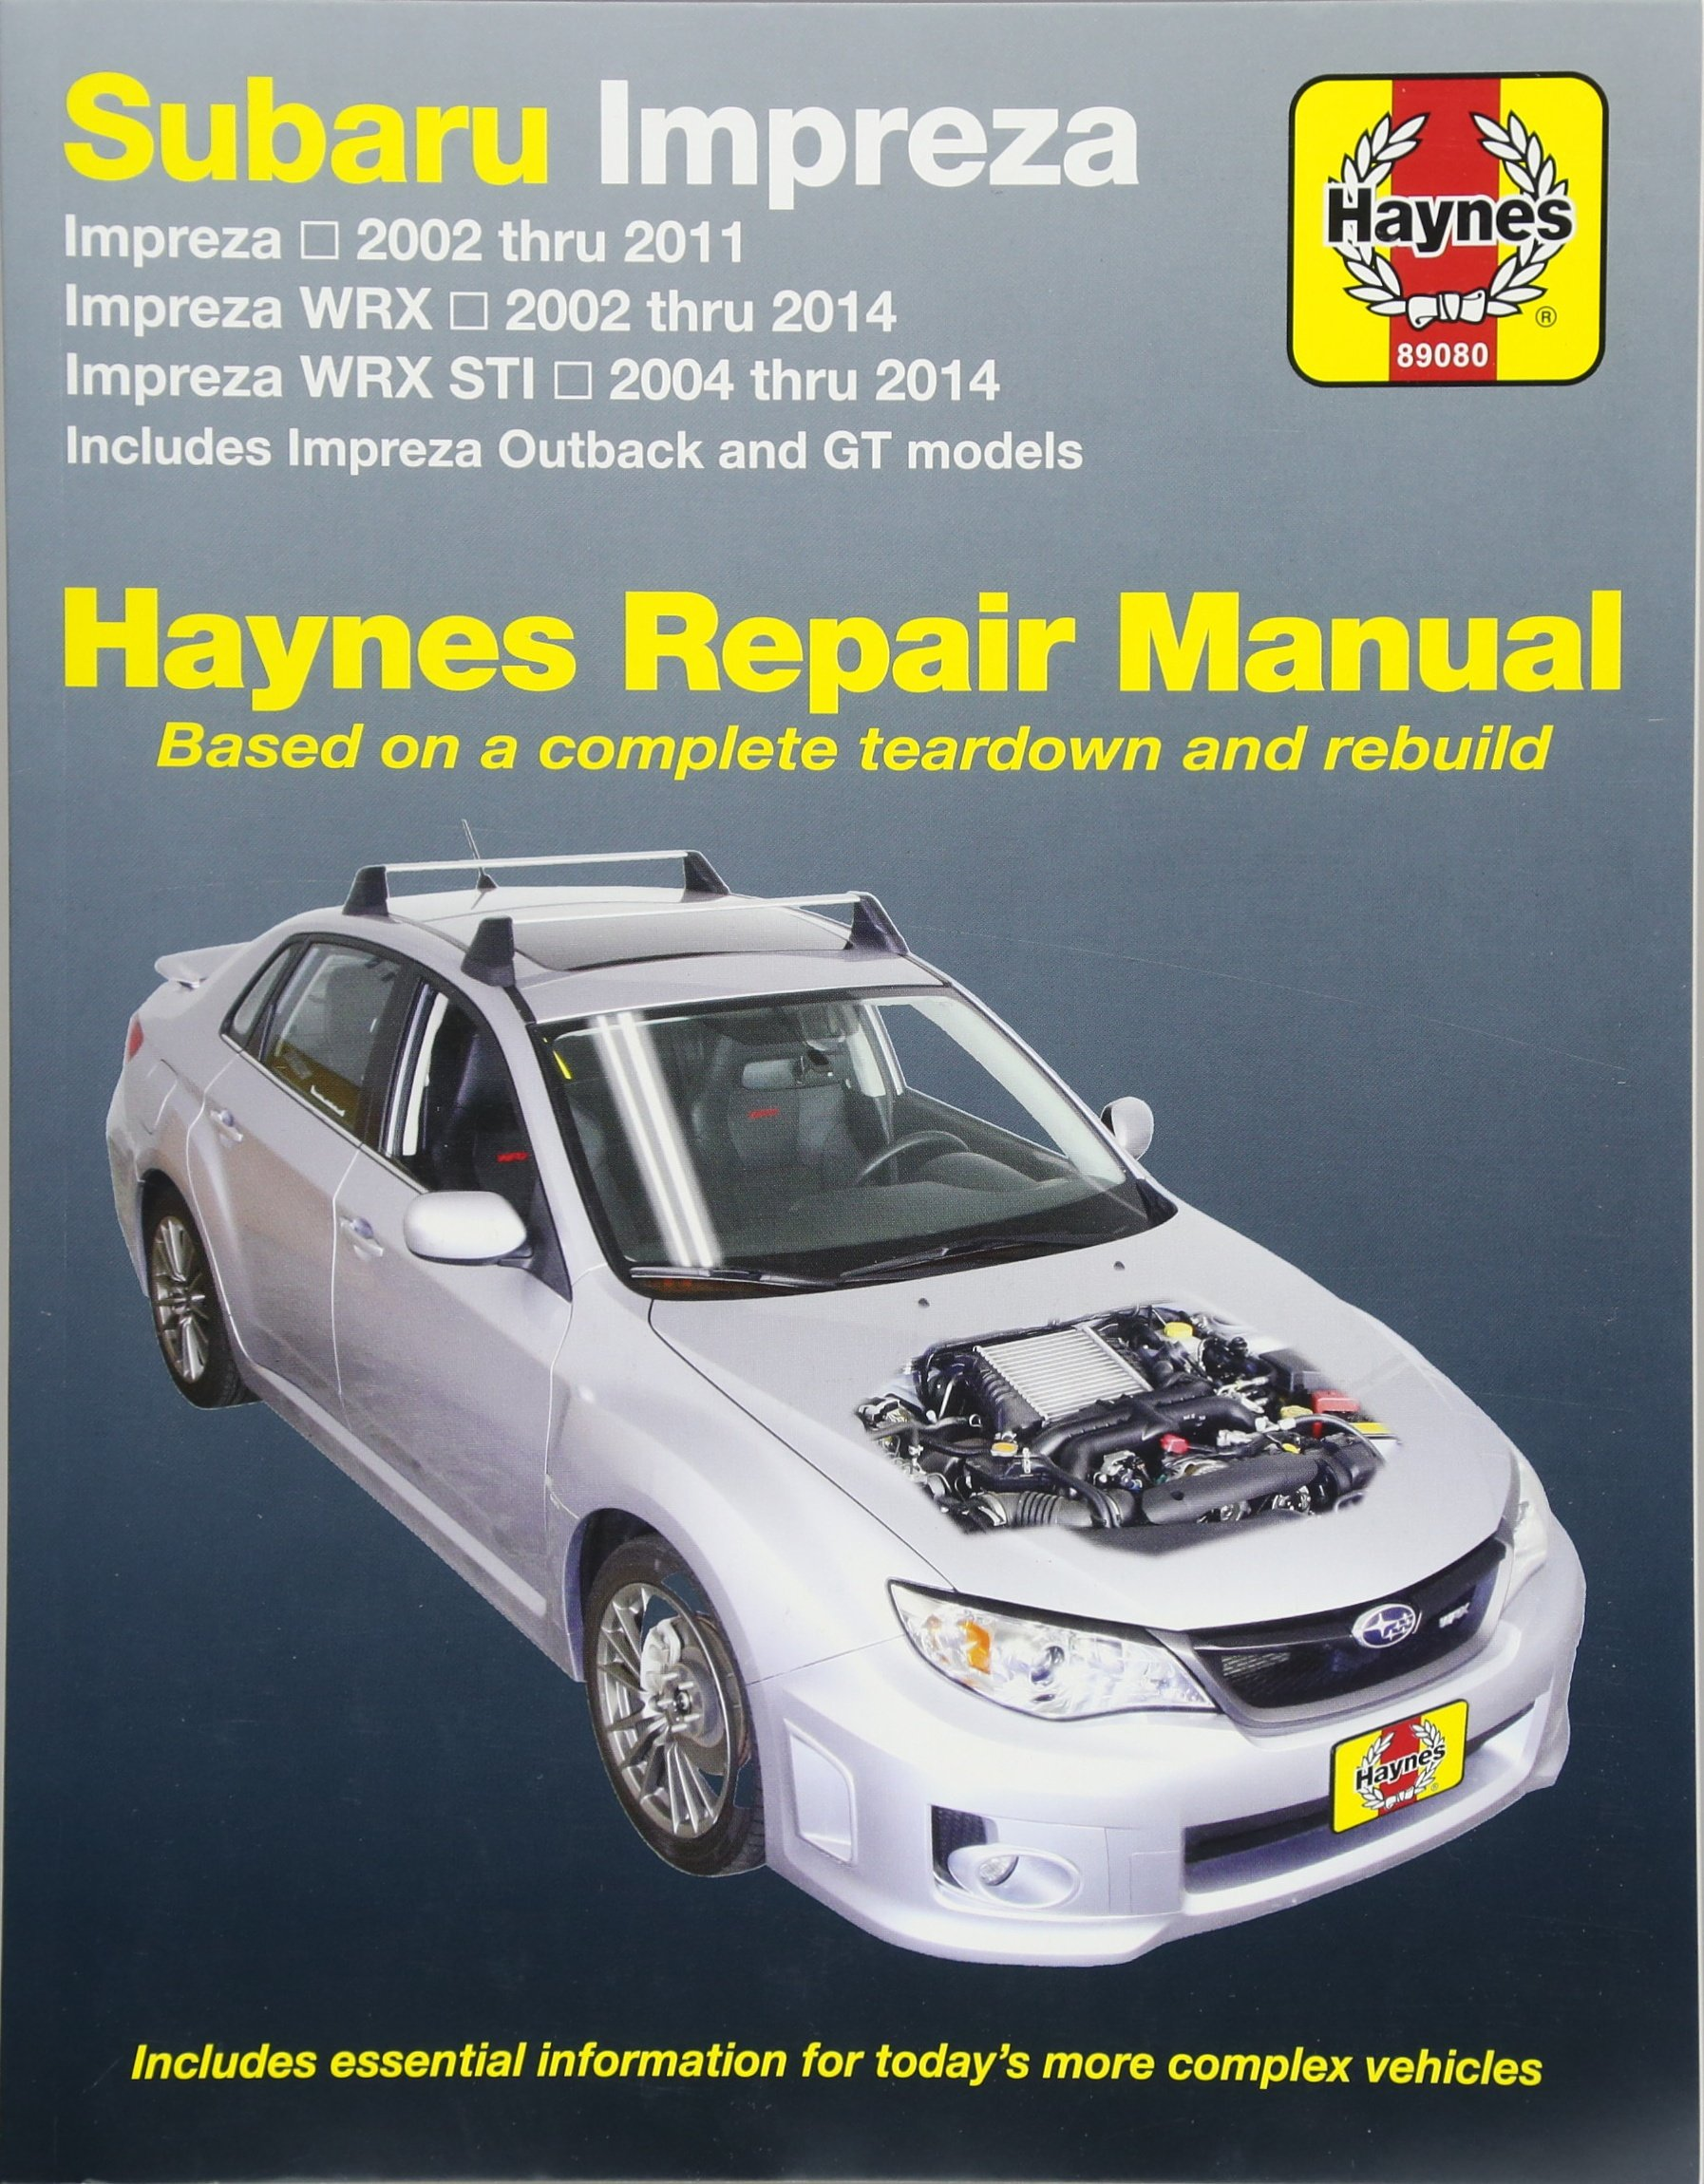 Subaru Impreza Wrx Automotive Repair Manual 2002 To 14 Haynes Central Locking Wiring Diagram Paperback Publishing 9781620921203 Books